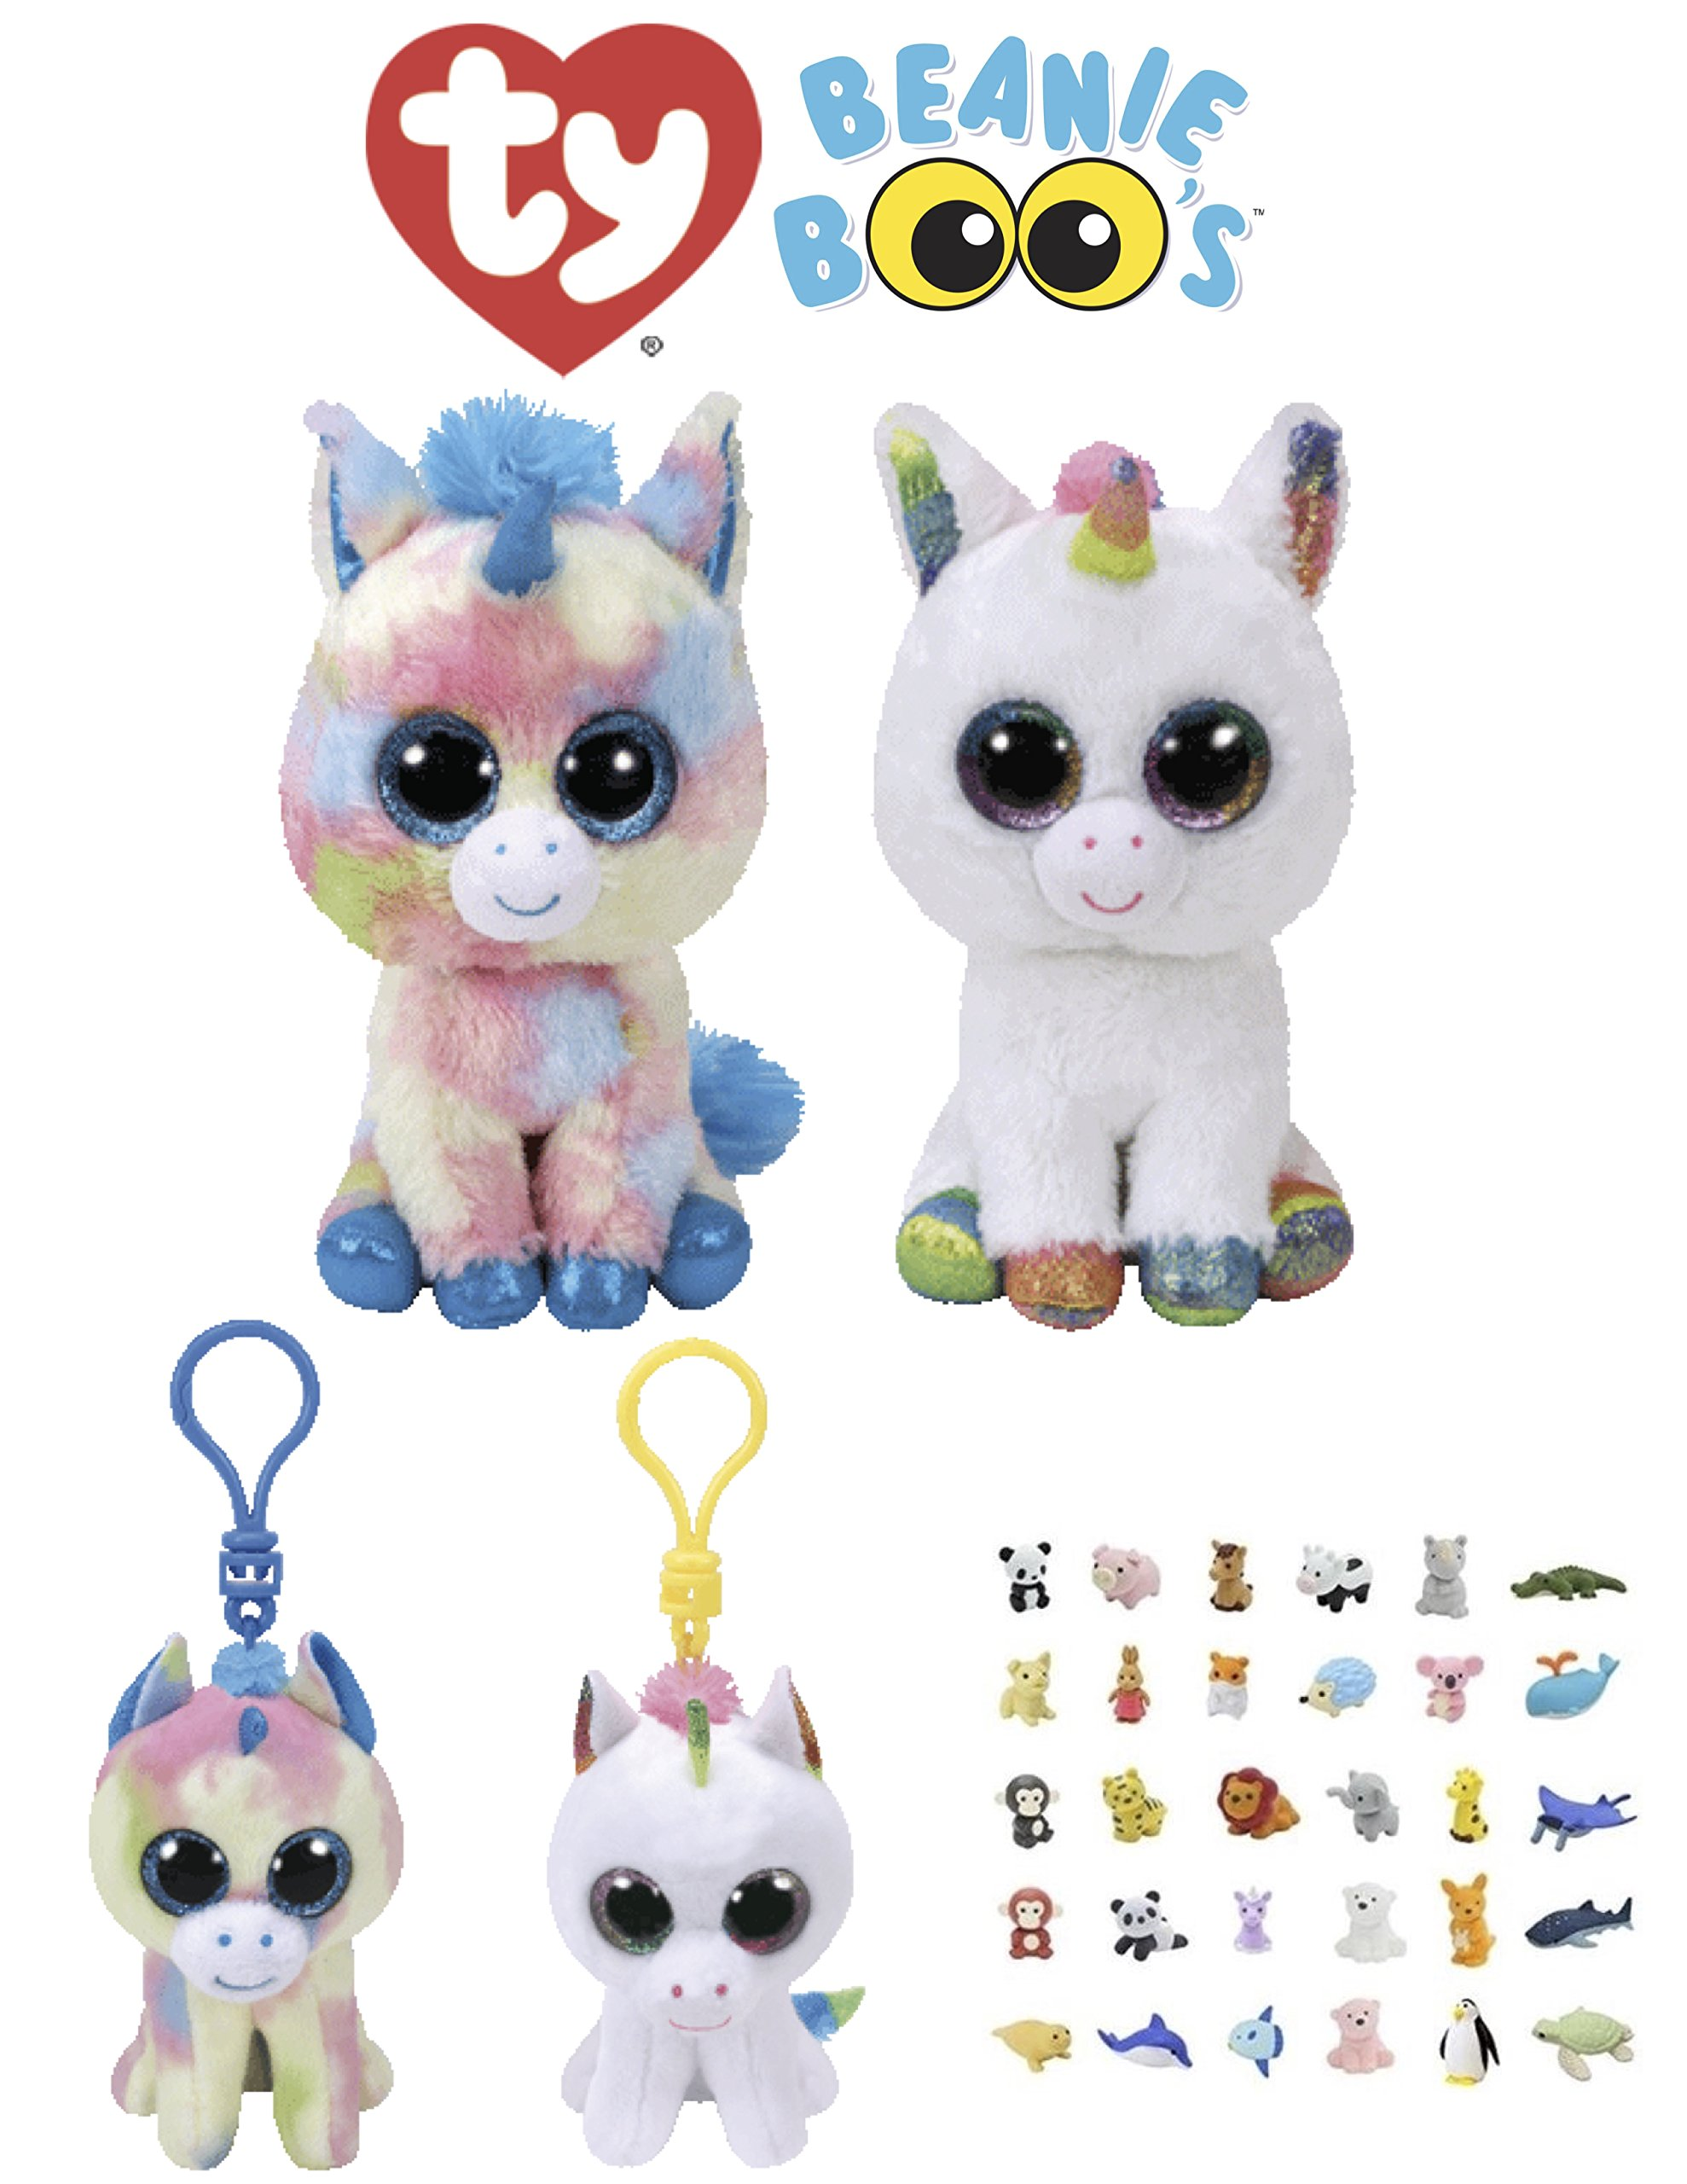 525365c40dc Get Quotations · Animal TY Beanie Boos Babies Stuffed Unicorns With Clip  Keychain   Puzzle Eraser